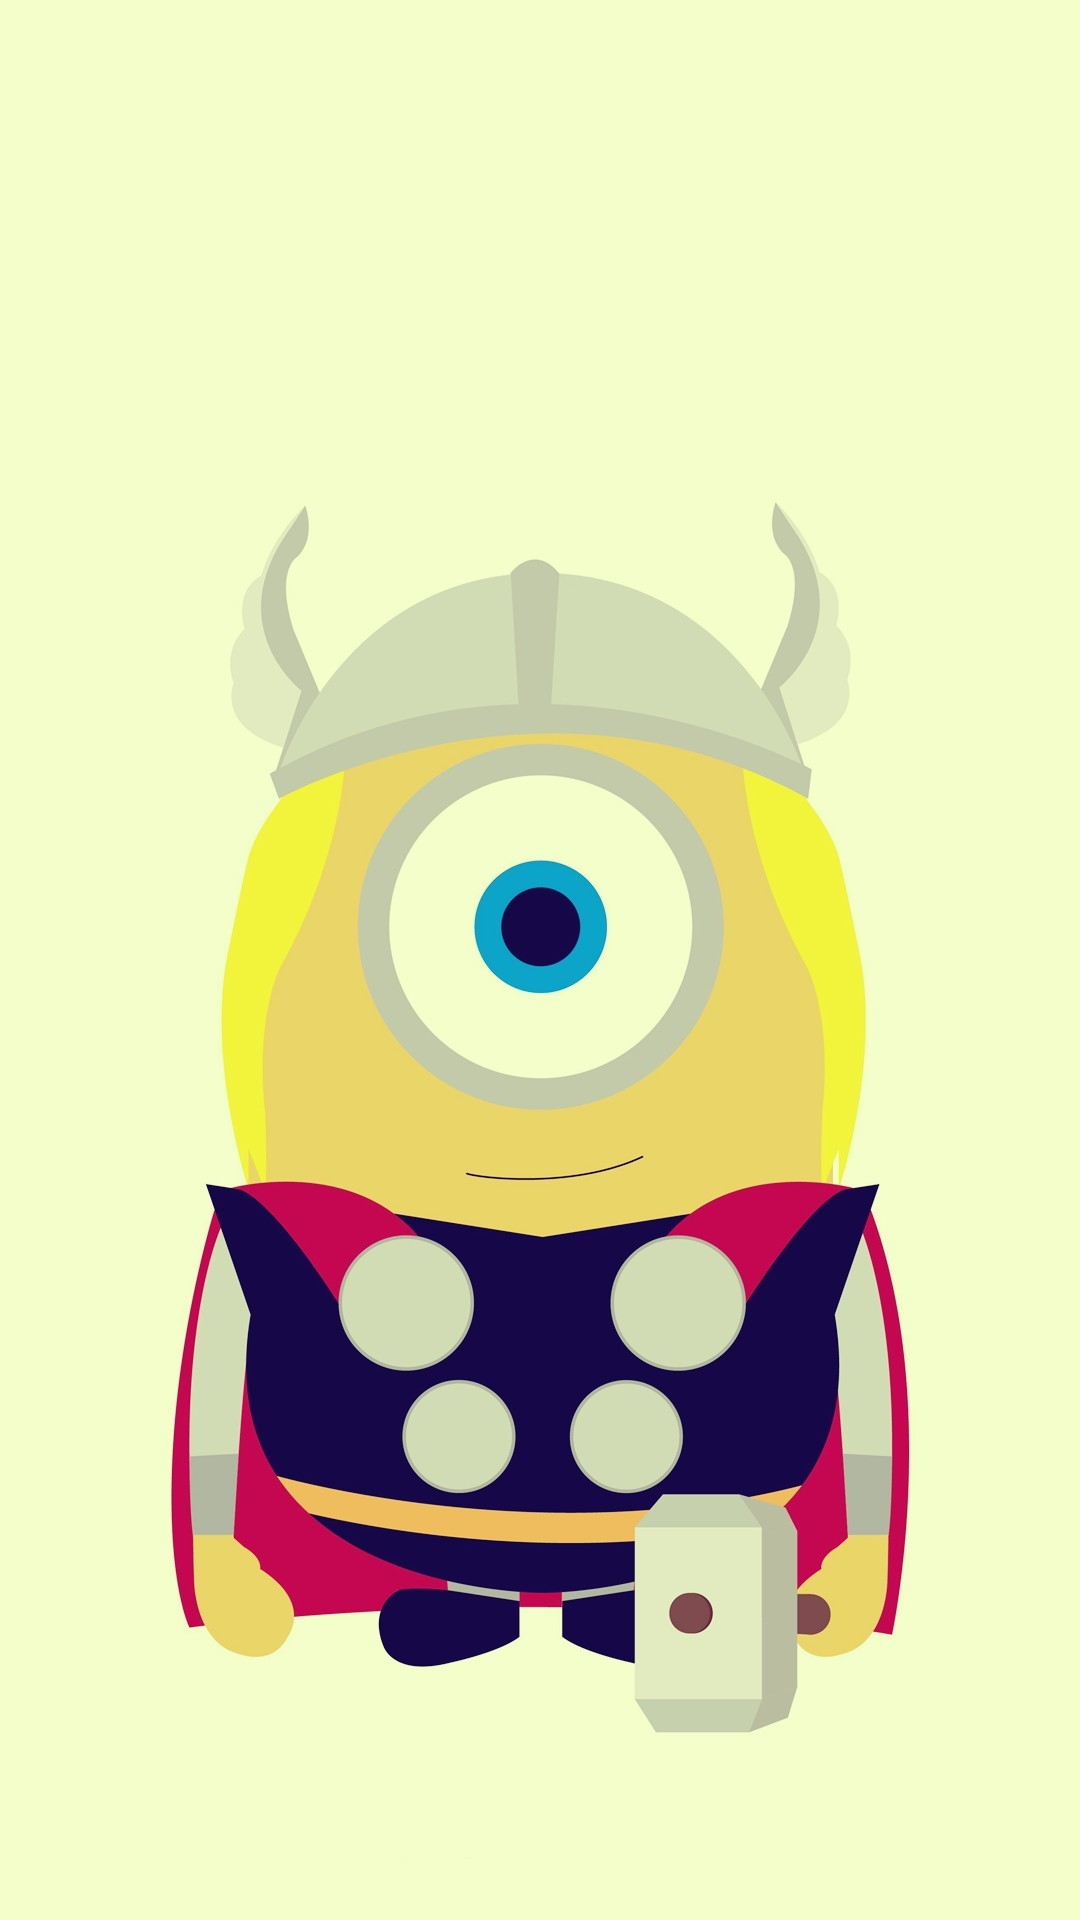 1080x1920 Funny Thor Minion Avengers Iphone 6 Plus Wallpaper HD   2014  Halloween, Despicable Me